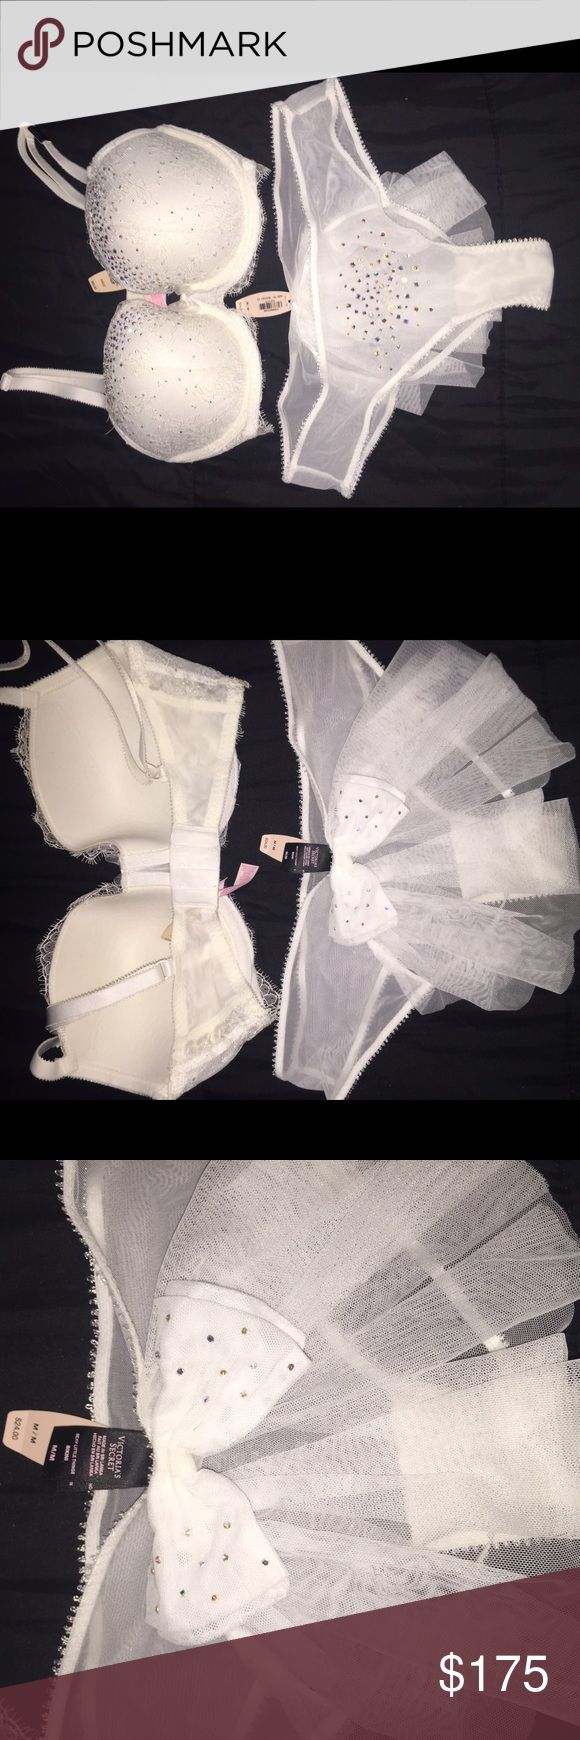 Victoria secret Bridal bra and panti  Limited edition matching bra and Panty. completely new with tag. Came out at the Victoria's Secret fashion show '14  definitely a collector     Size 34dd / M Victoria's Secret Intimates & Sleepwear Bras